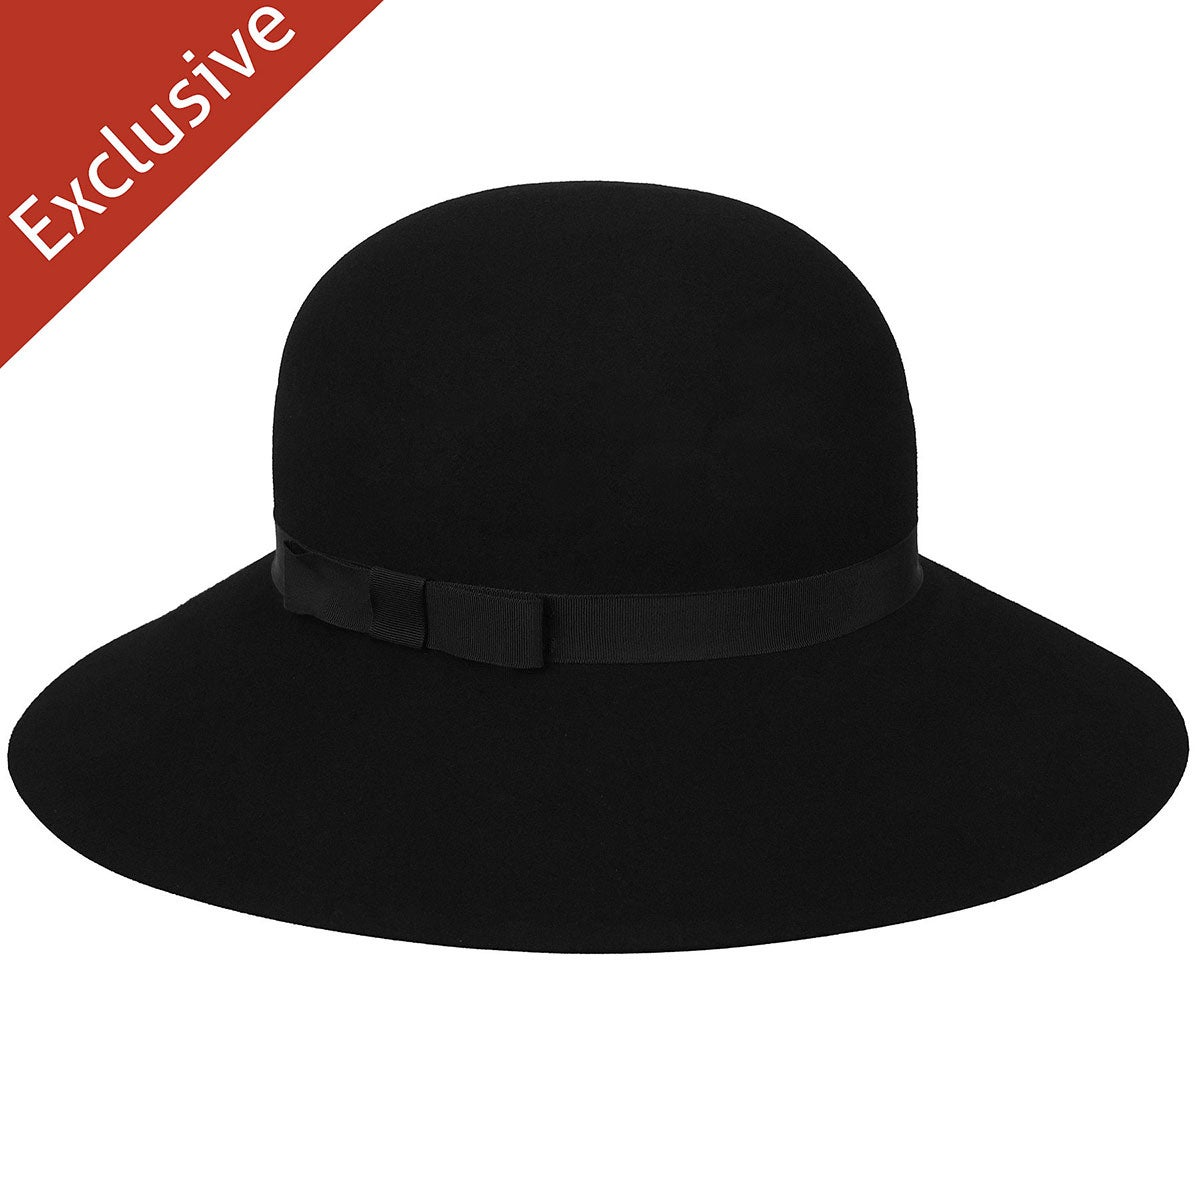 Hats.com Abby Wide Brim Hat in Black